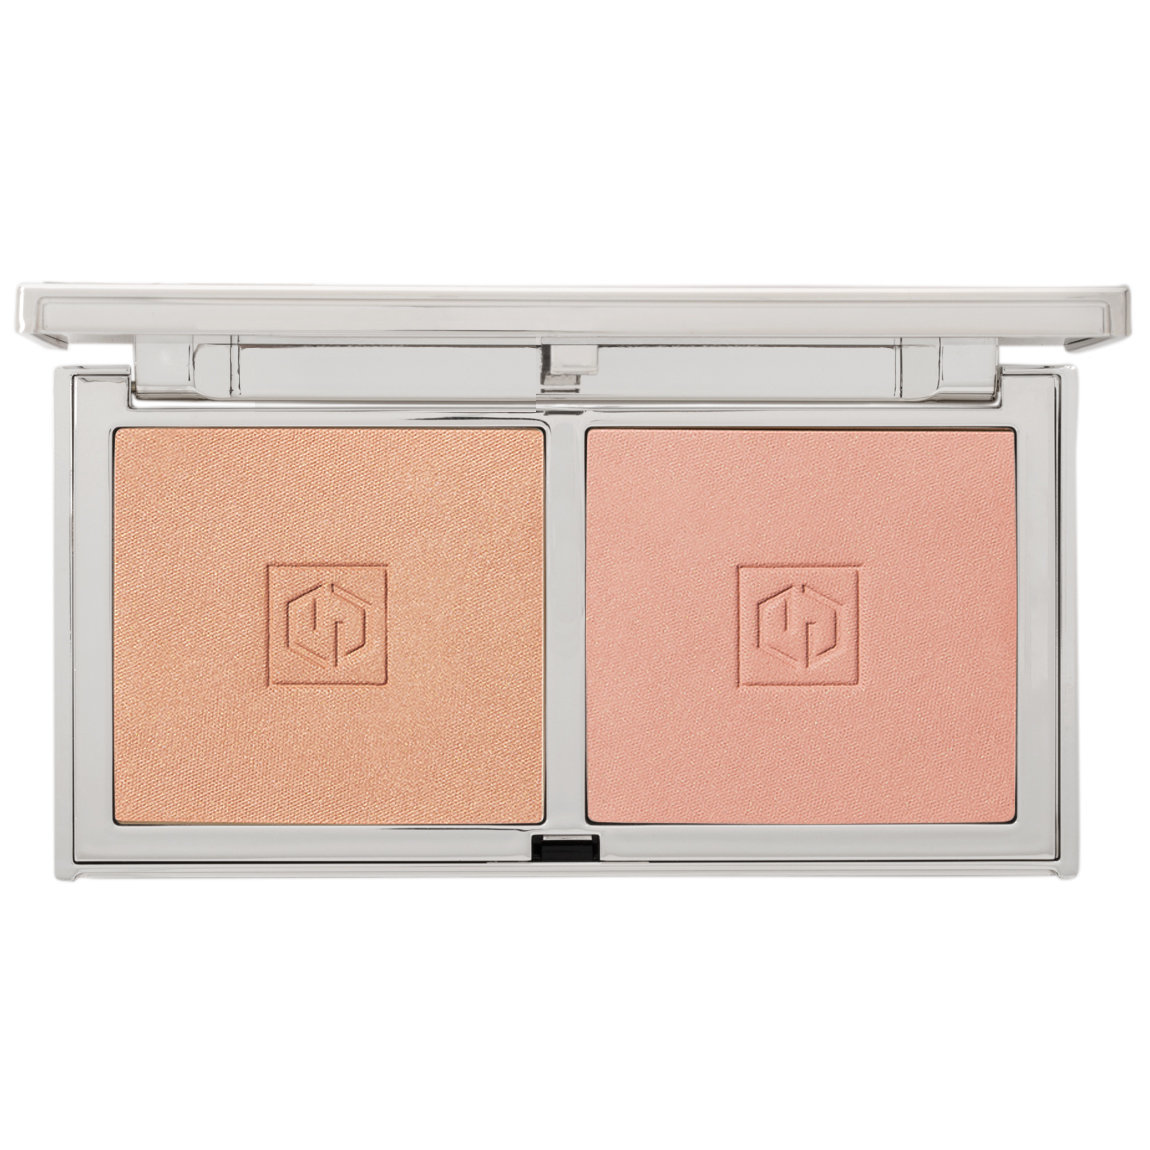 Jouer Cosmetics Blush Bouquet Darling product swatch.